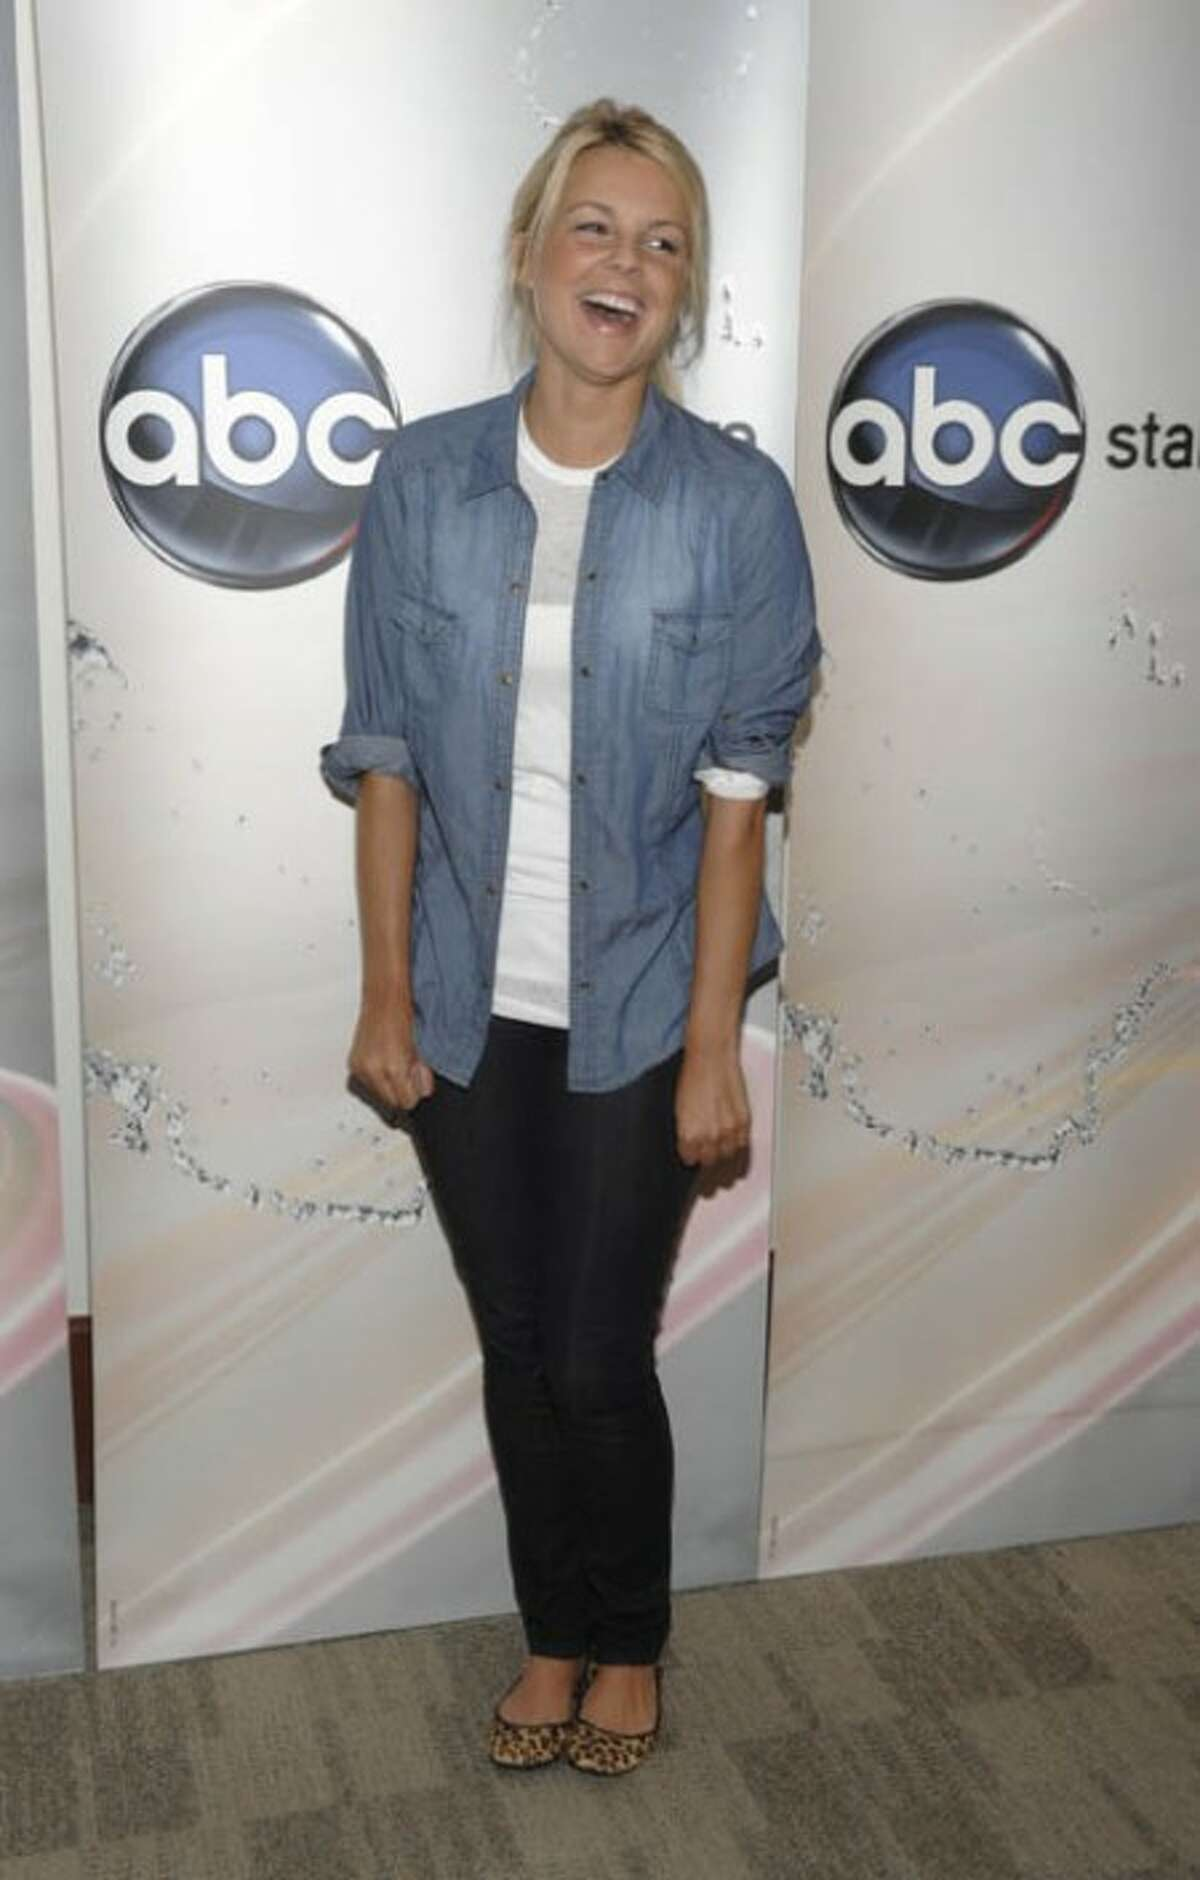 Television personality Ali Fedotowsky arrives at the Disney ABC Television Summer press junket in Burbank, Calif. on Saturday, May 15 , 2010. (AP Photo/Dan Steinberg)